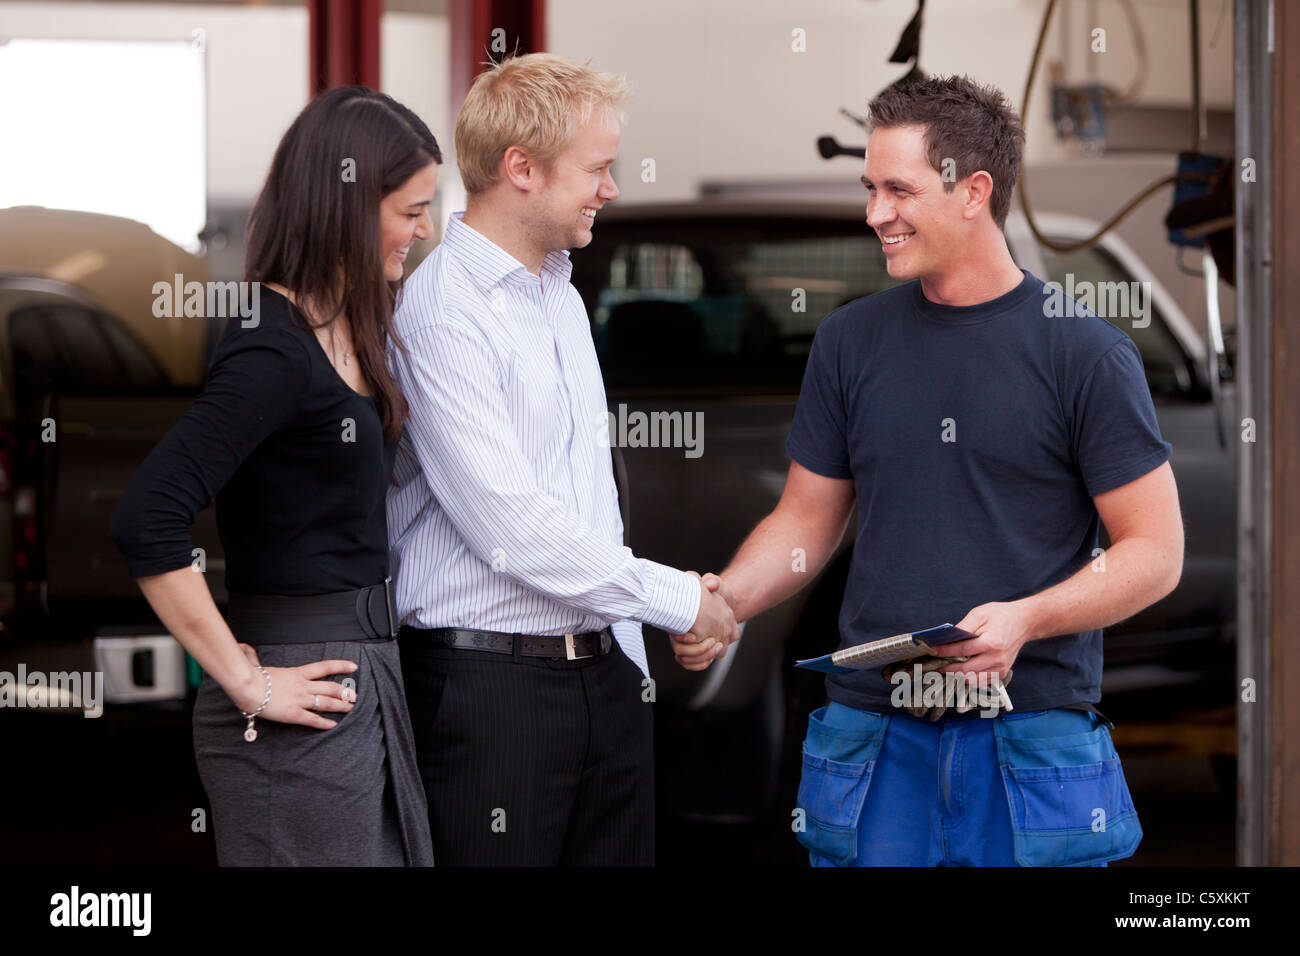 A happy attractive mechanic shaking hands with a customer couple,happy with their service Stock Photo